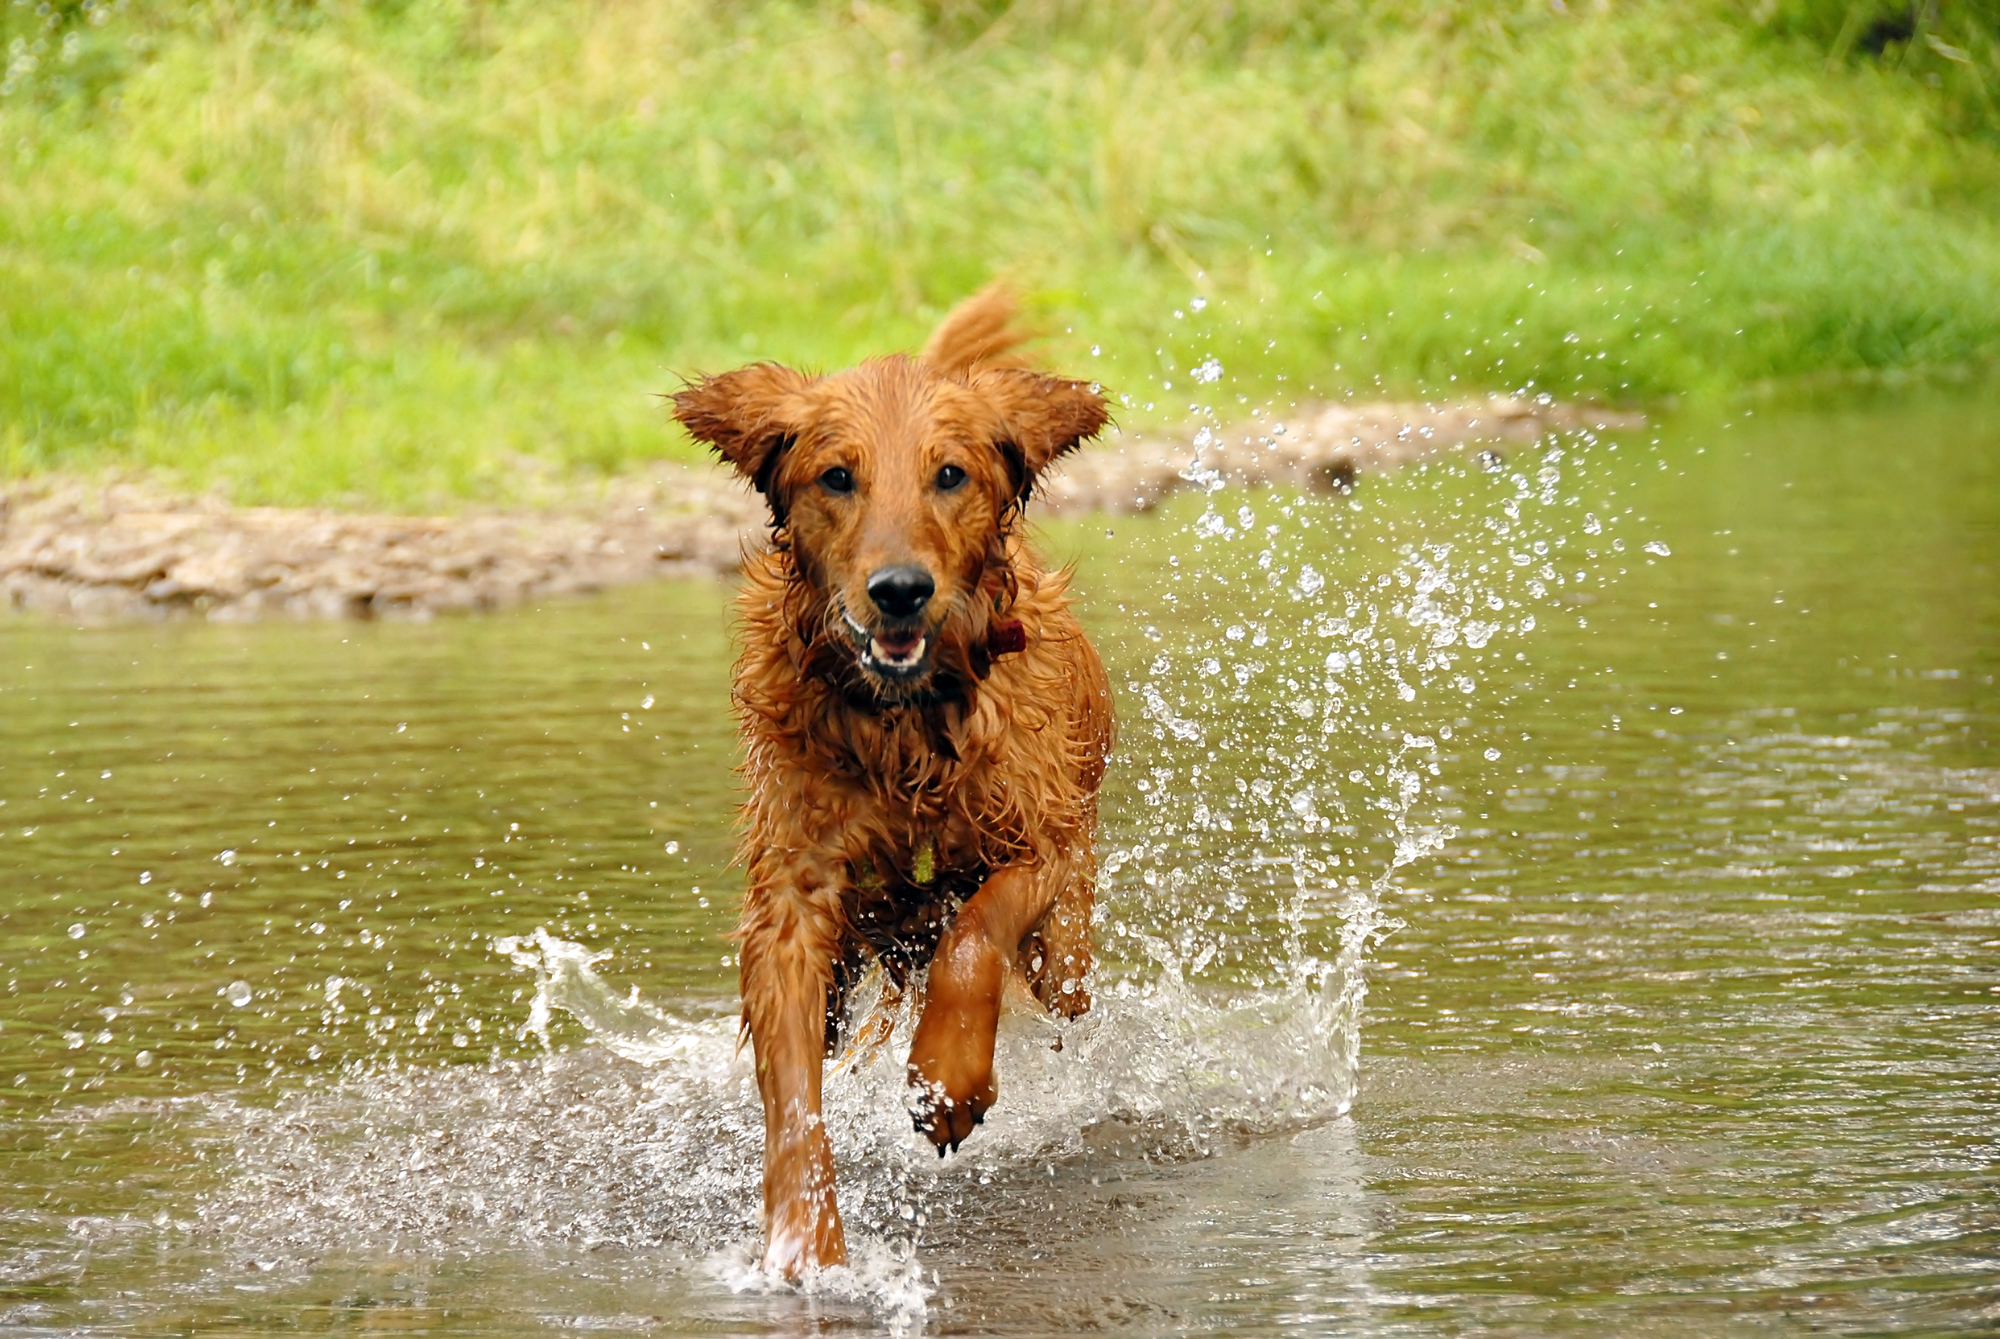 Hypothermia in Dogs | Signs and Treatment for Dog Hypothermia